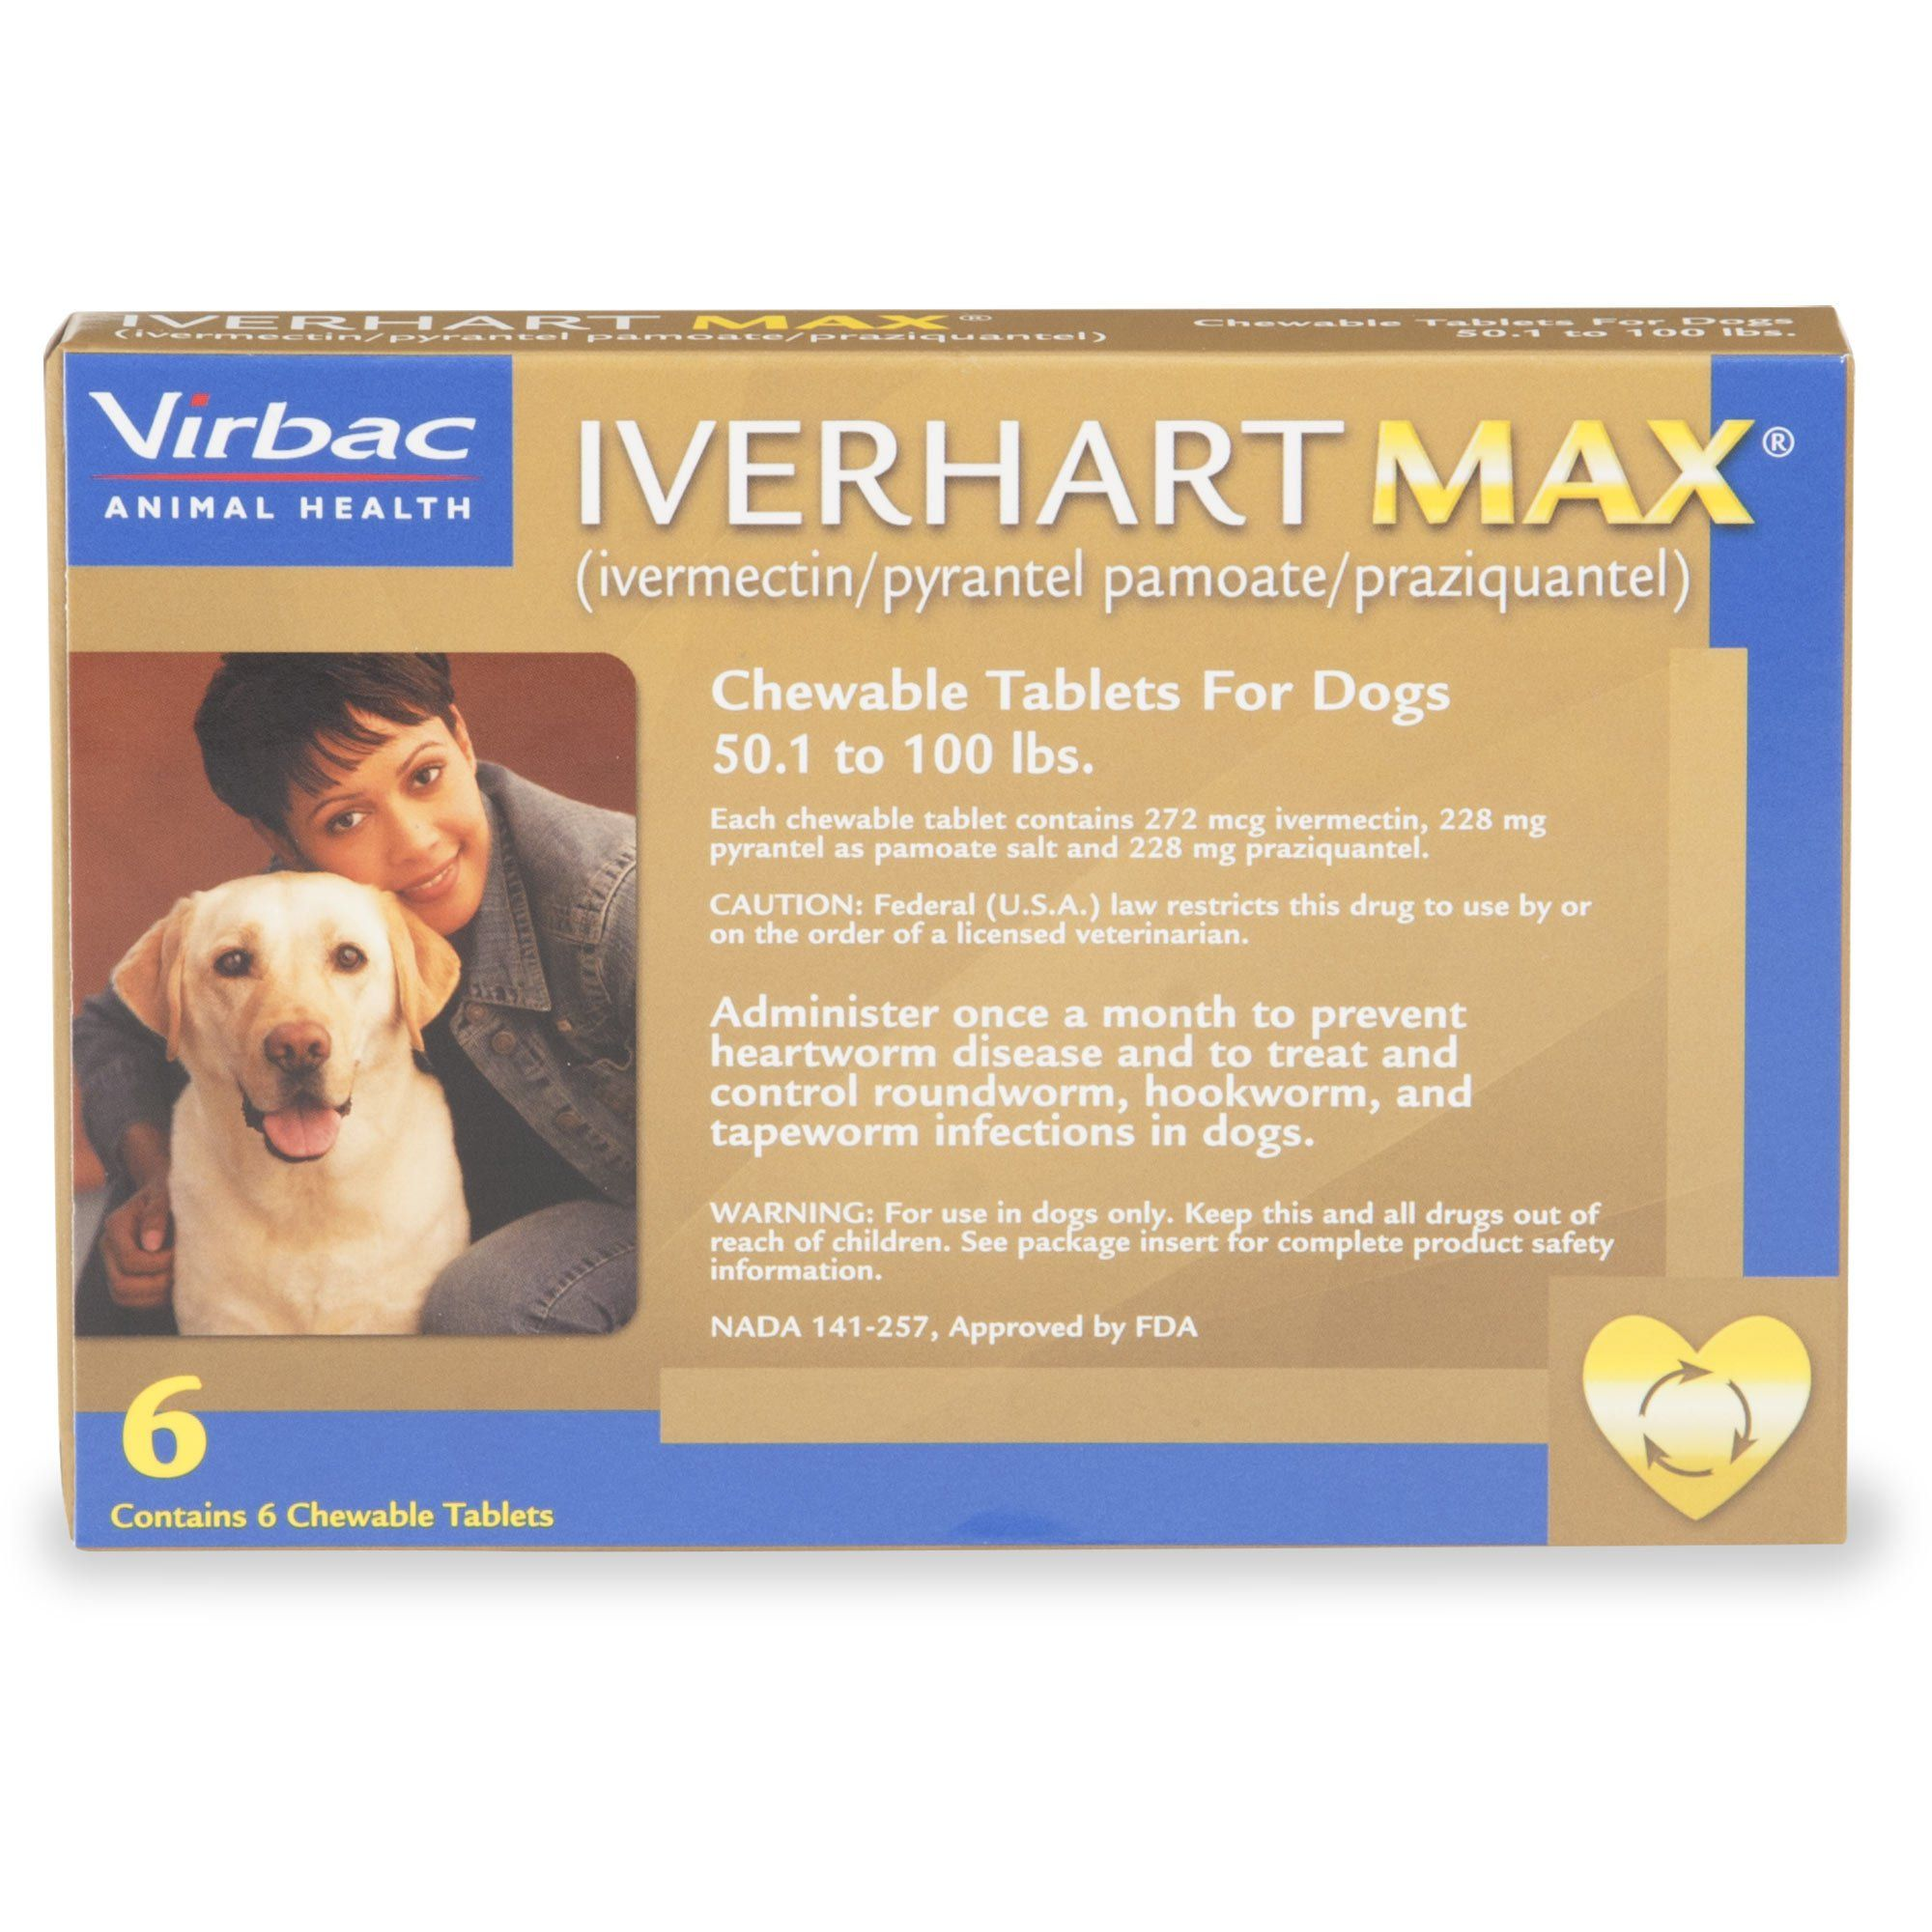 Iverhart Max Soft Chews for Dogs 50 to 100 lbs., 6 Pack